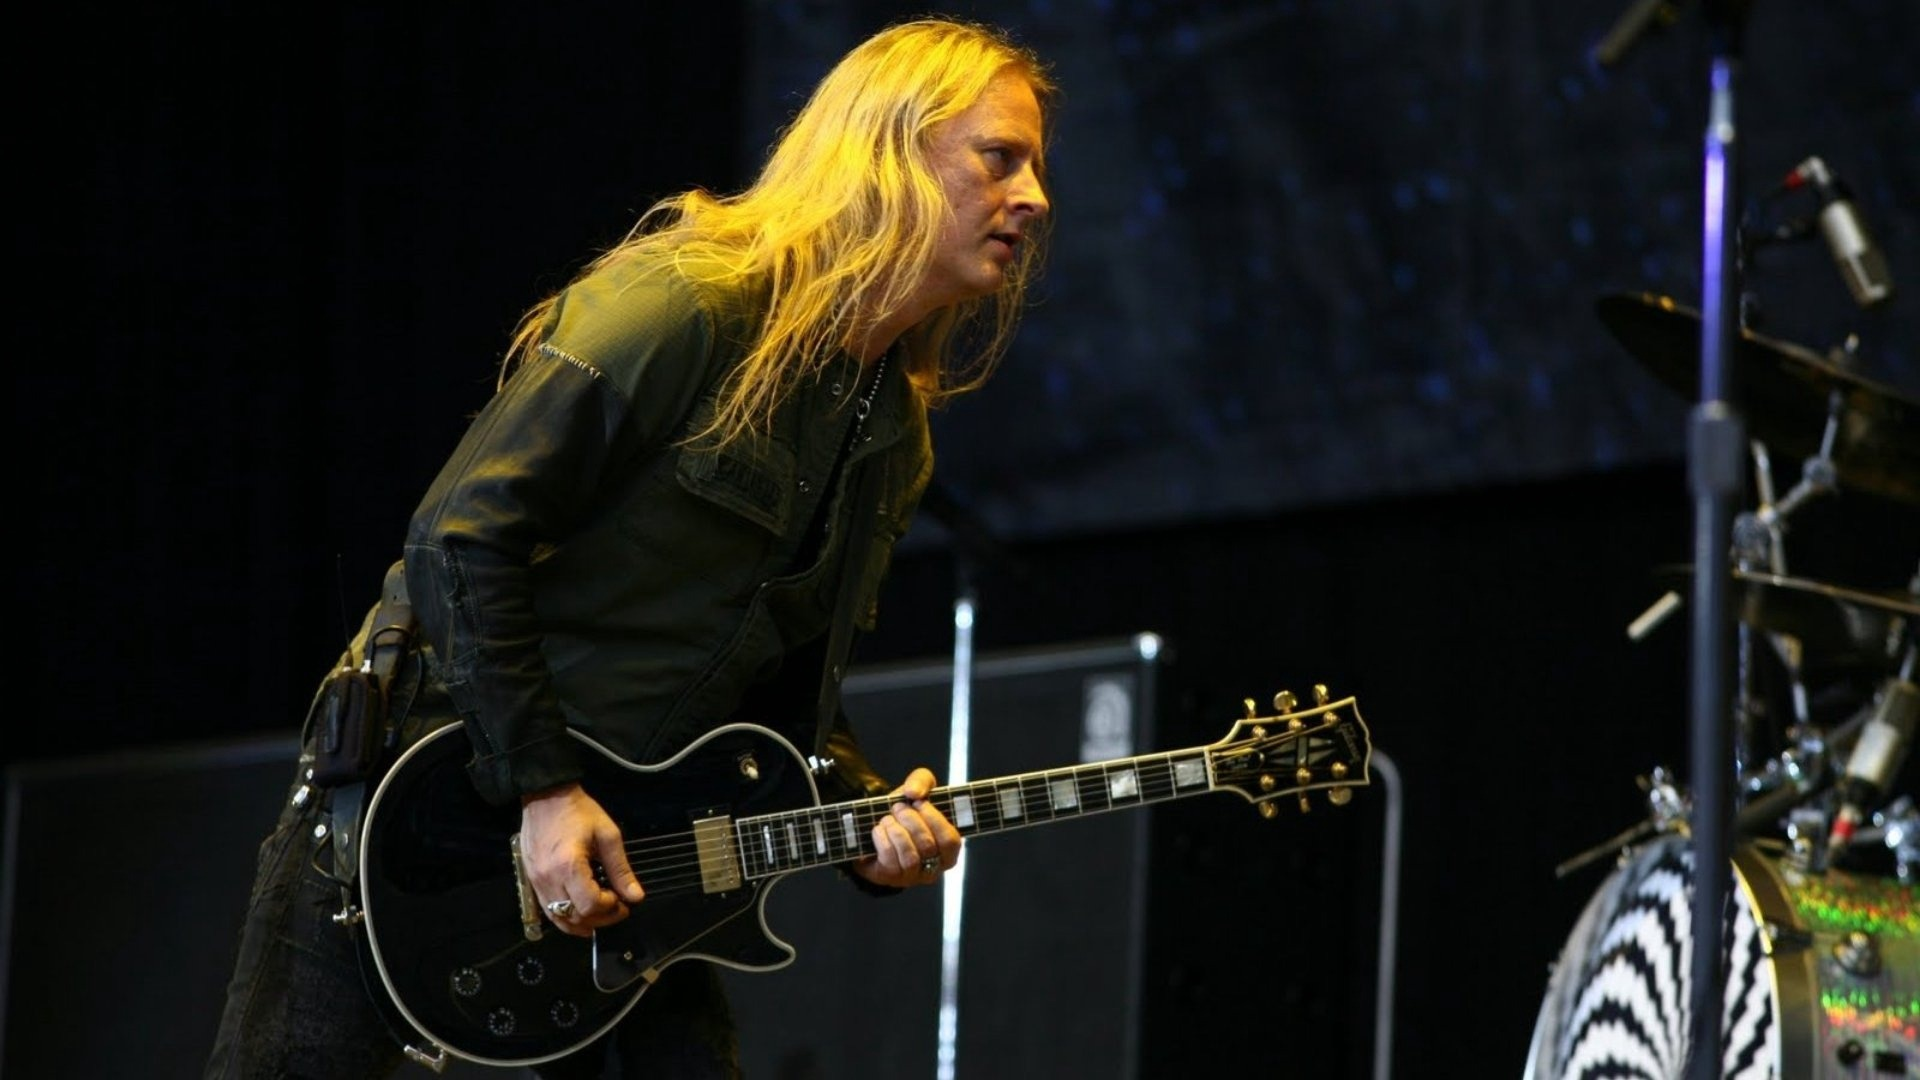 Download wallpaper 1920x1080 jerry cantrell hair guitar play 1920x1080